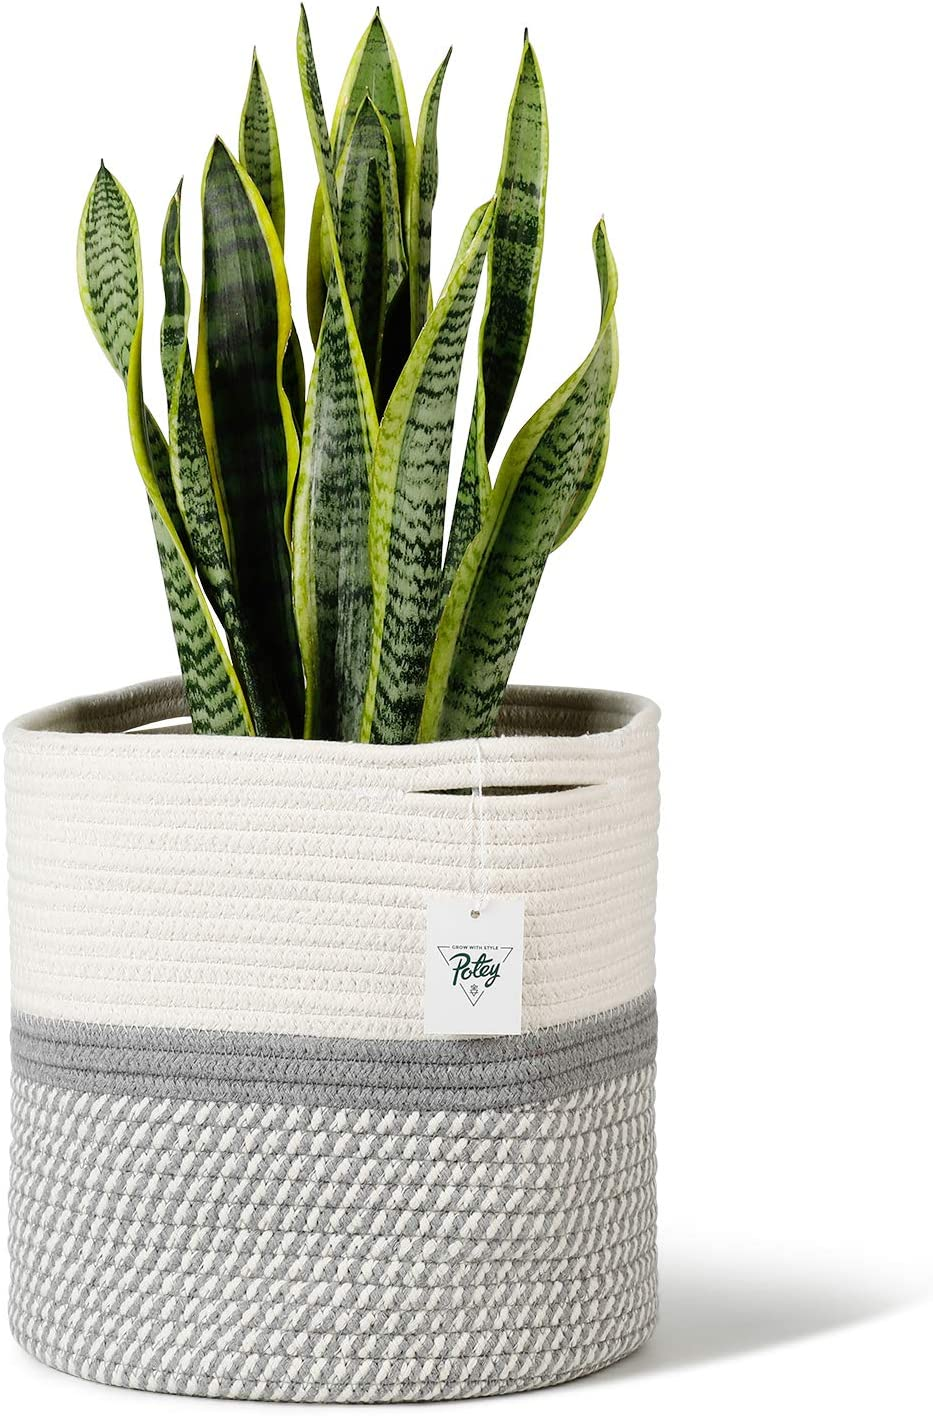 POTEY 700603 Cotton Rope Woven Plant Basket Modern Woven Basket for 11